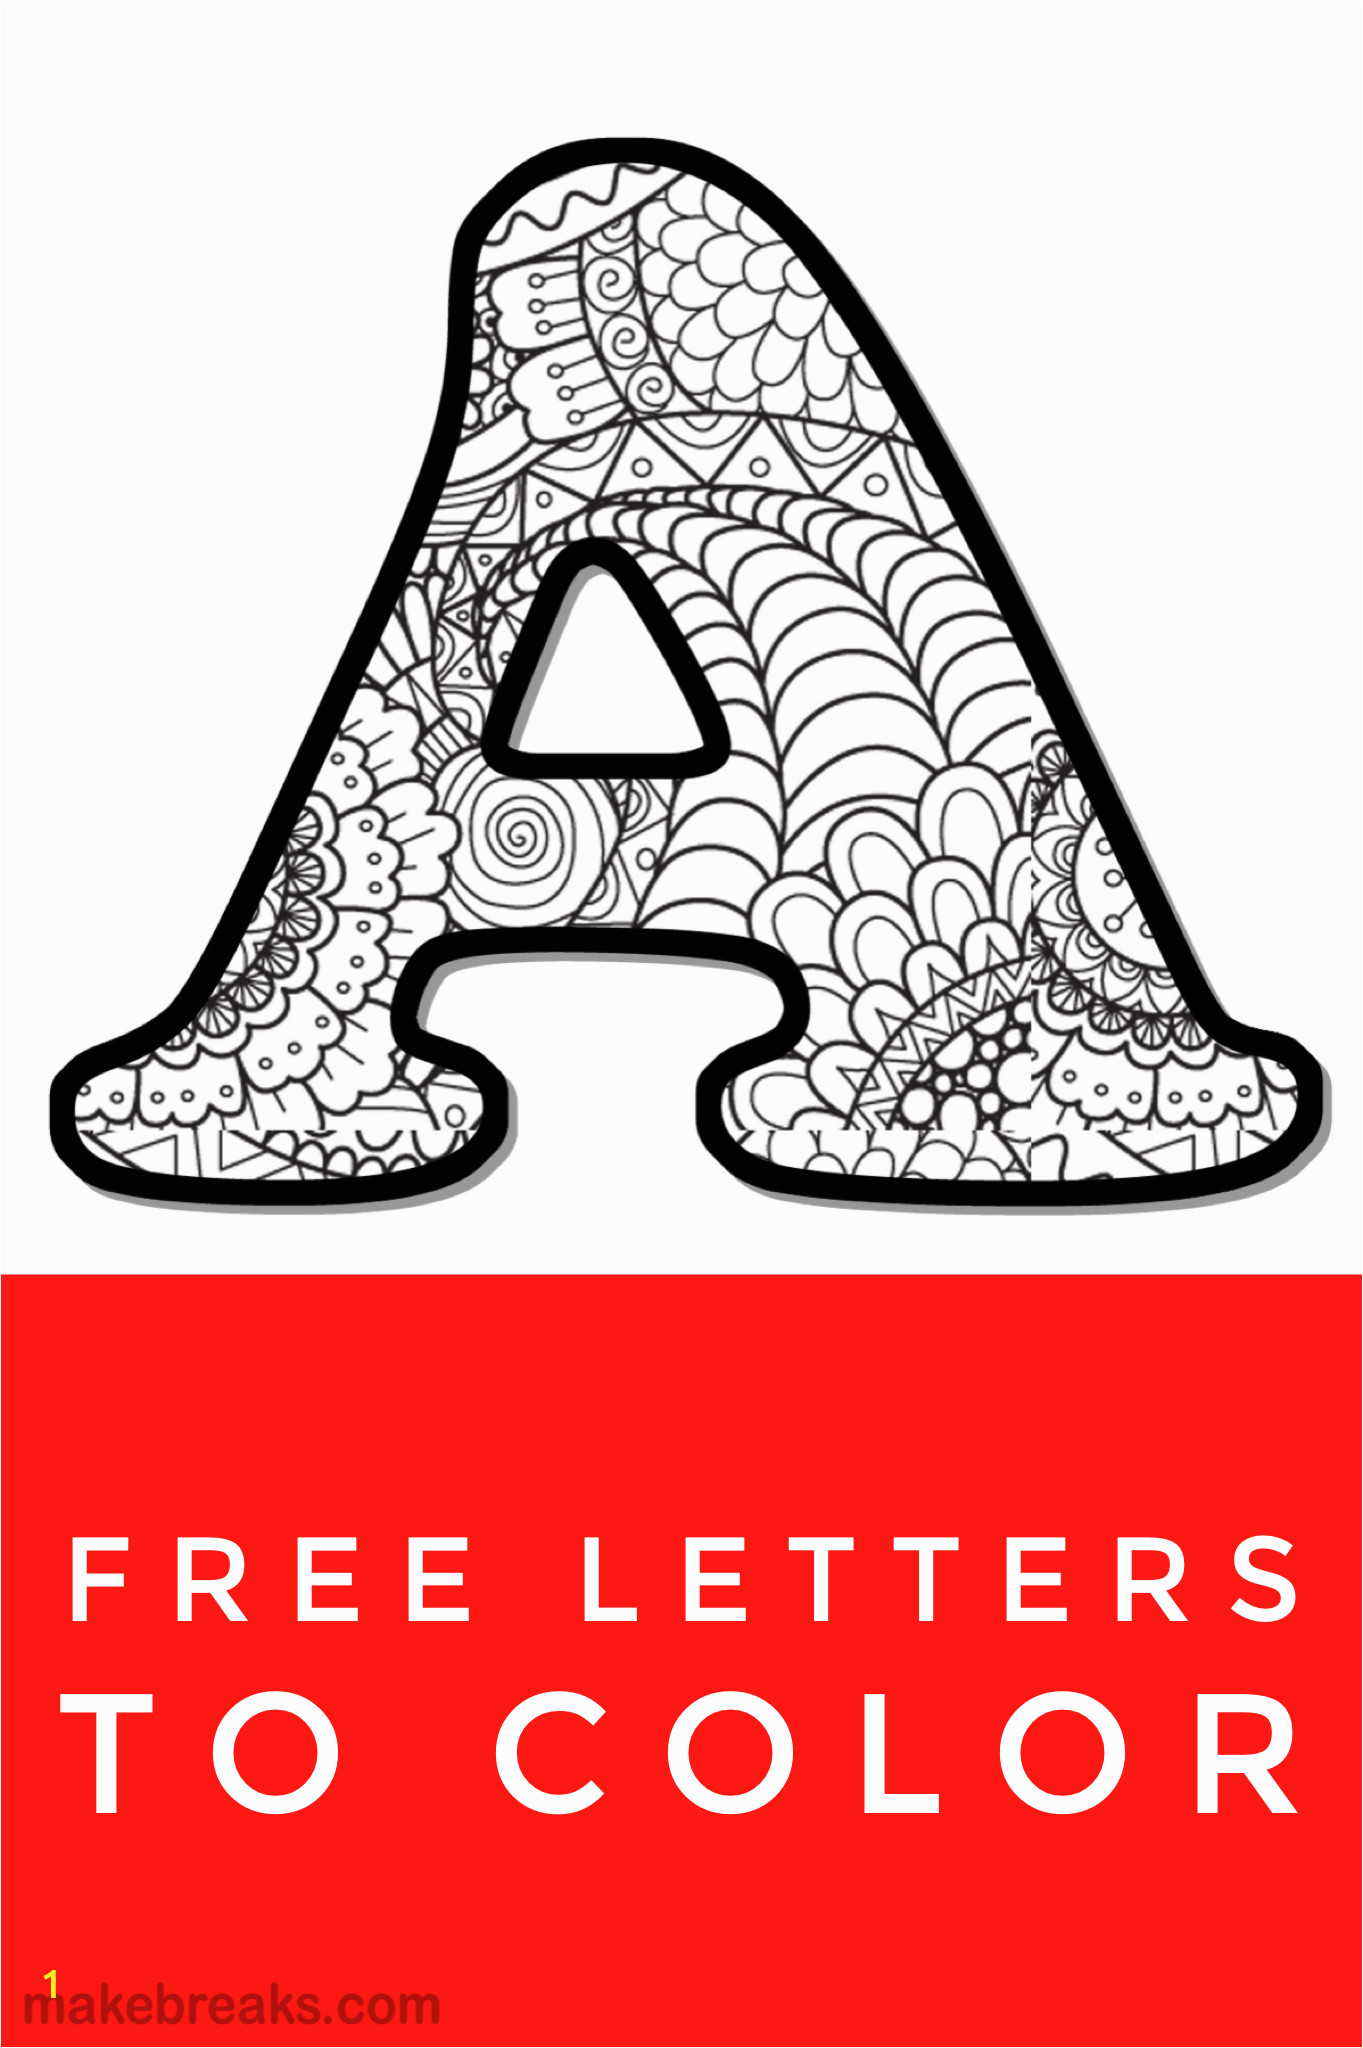 Alphabet Coloring Pages Free Printable Printable Letter Alphabet Coloring Pages Kids